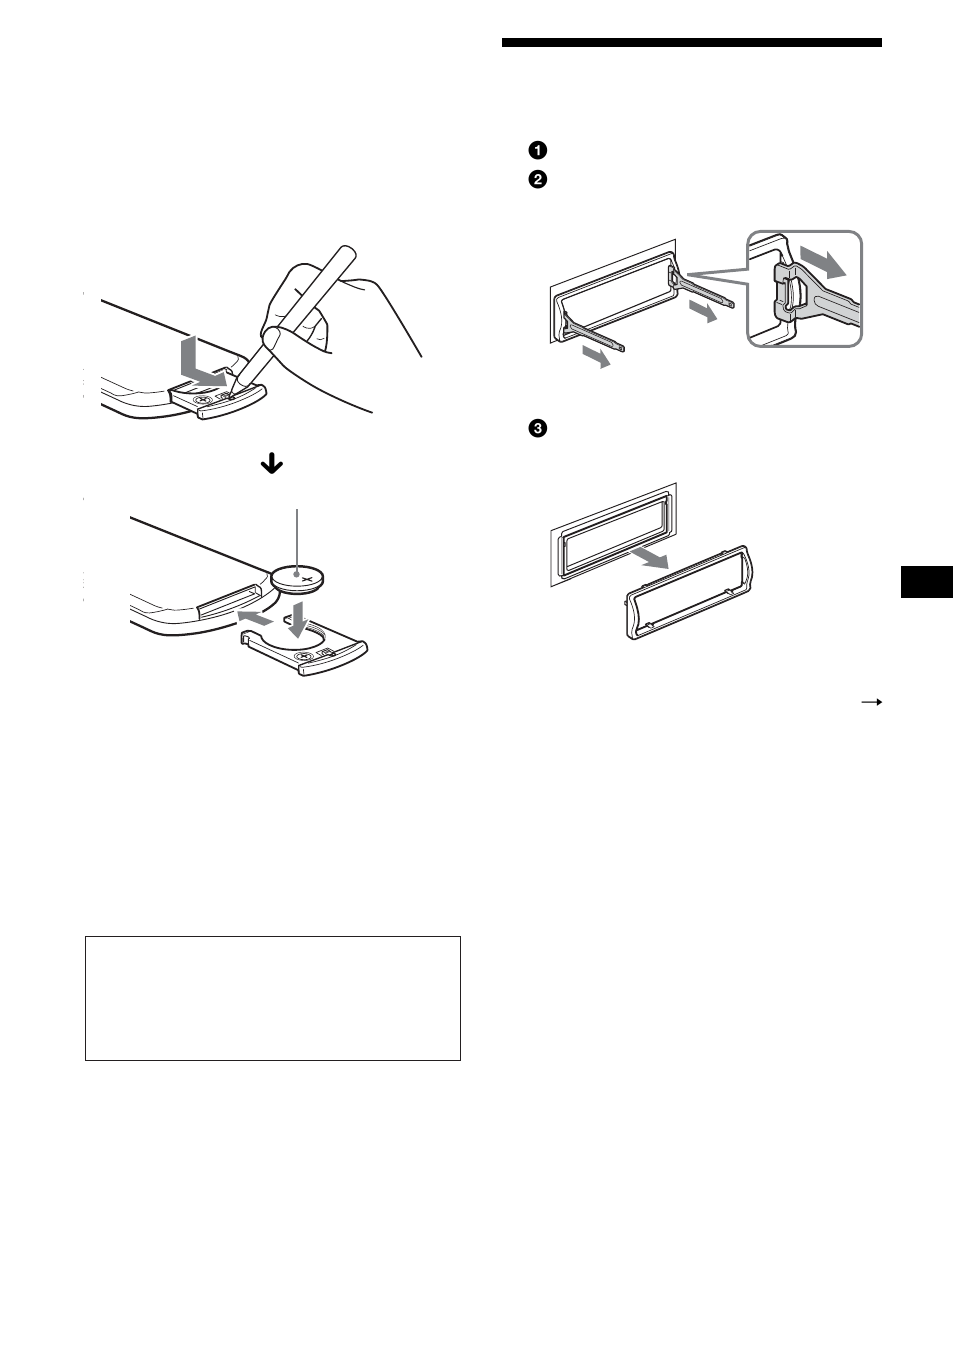 Sony 52wx4 Wiring Diagram Trusted Wiring Diagrams Source · Extracci n de la  unidad Sony CDX SW200 User Manual Page 33 40